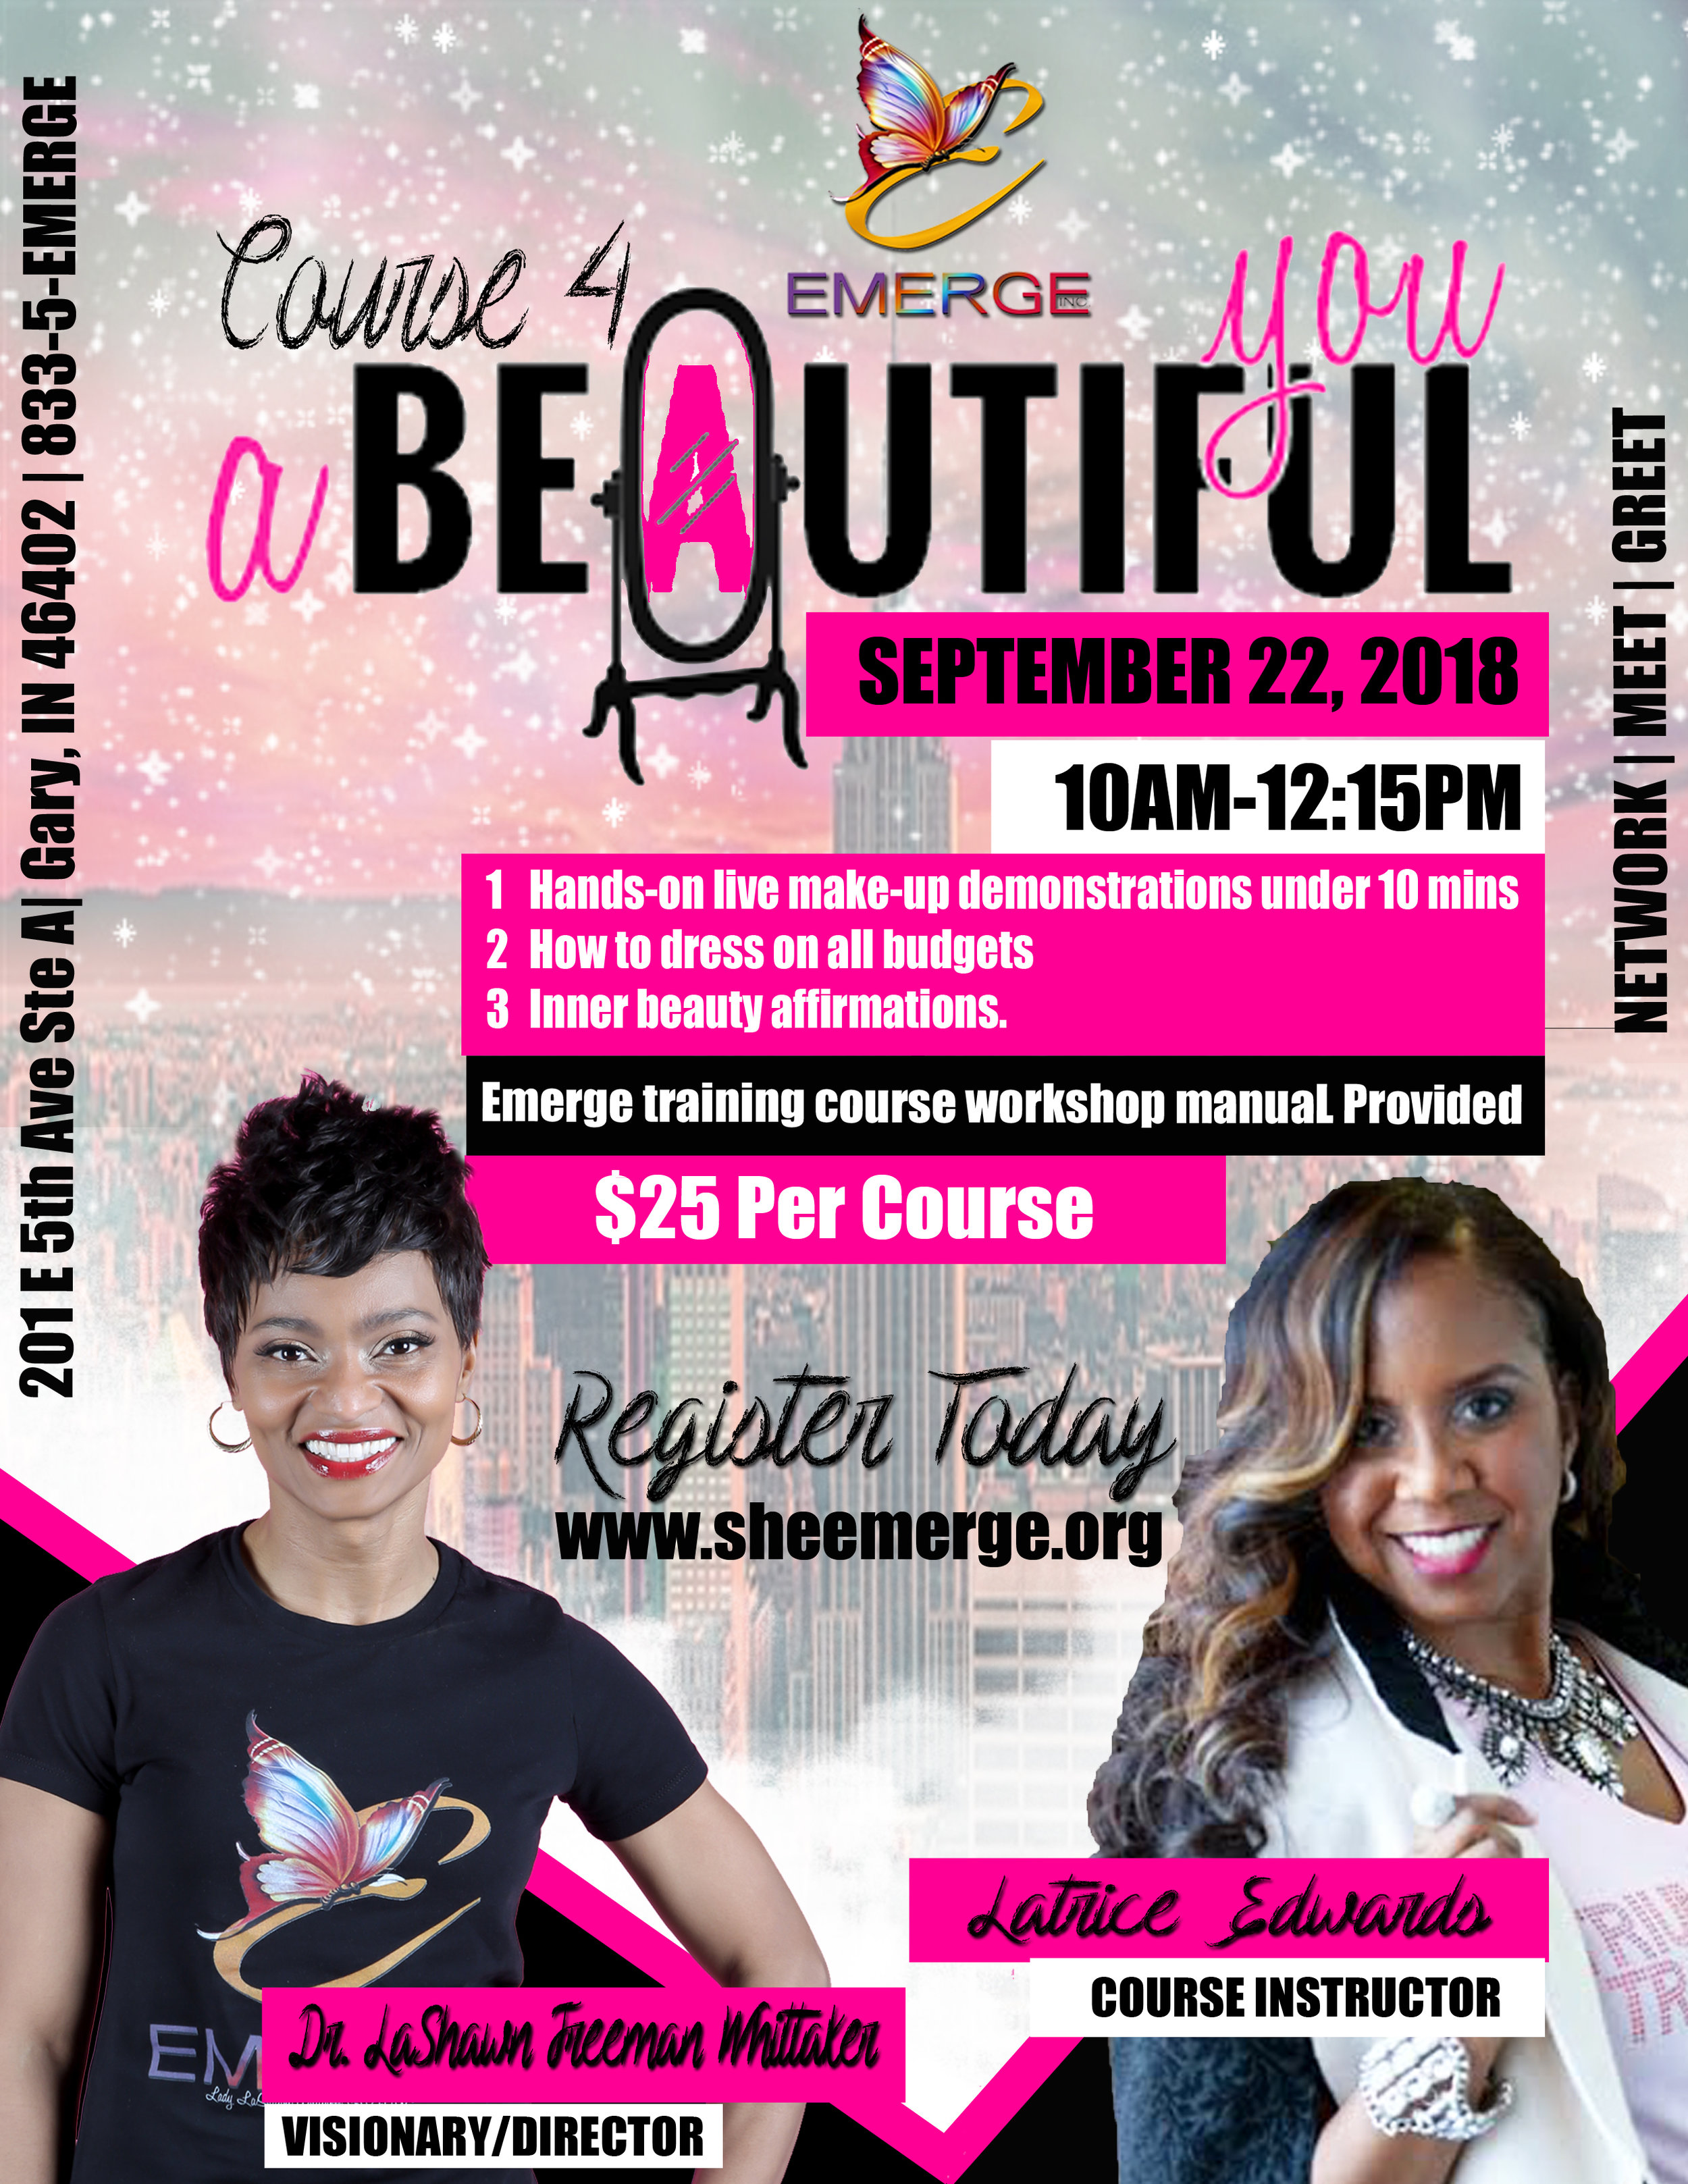 Course 4: A Beautiful You - Session Start Date: September 22, 2018Course Description: Fearfully and Wonderfully Made-Makeup tips, How to dress on all budgetsPresenter: LaTrice EdwardsLocation: 201 E 5th Ave Ste DTime 10:00am-12:15pm